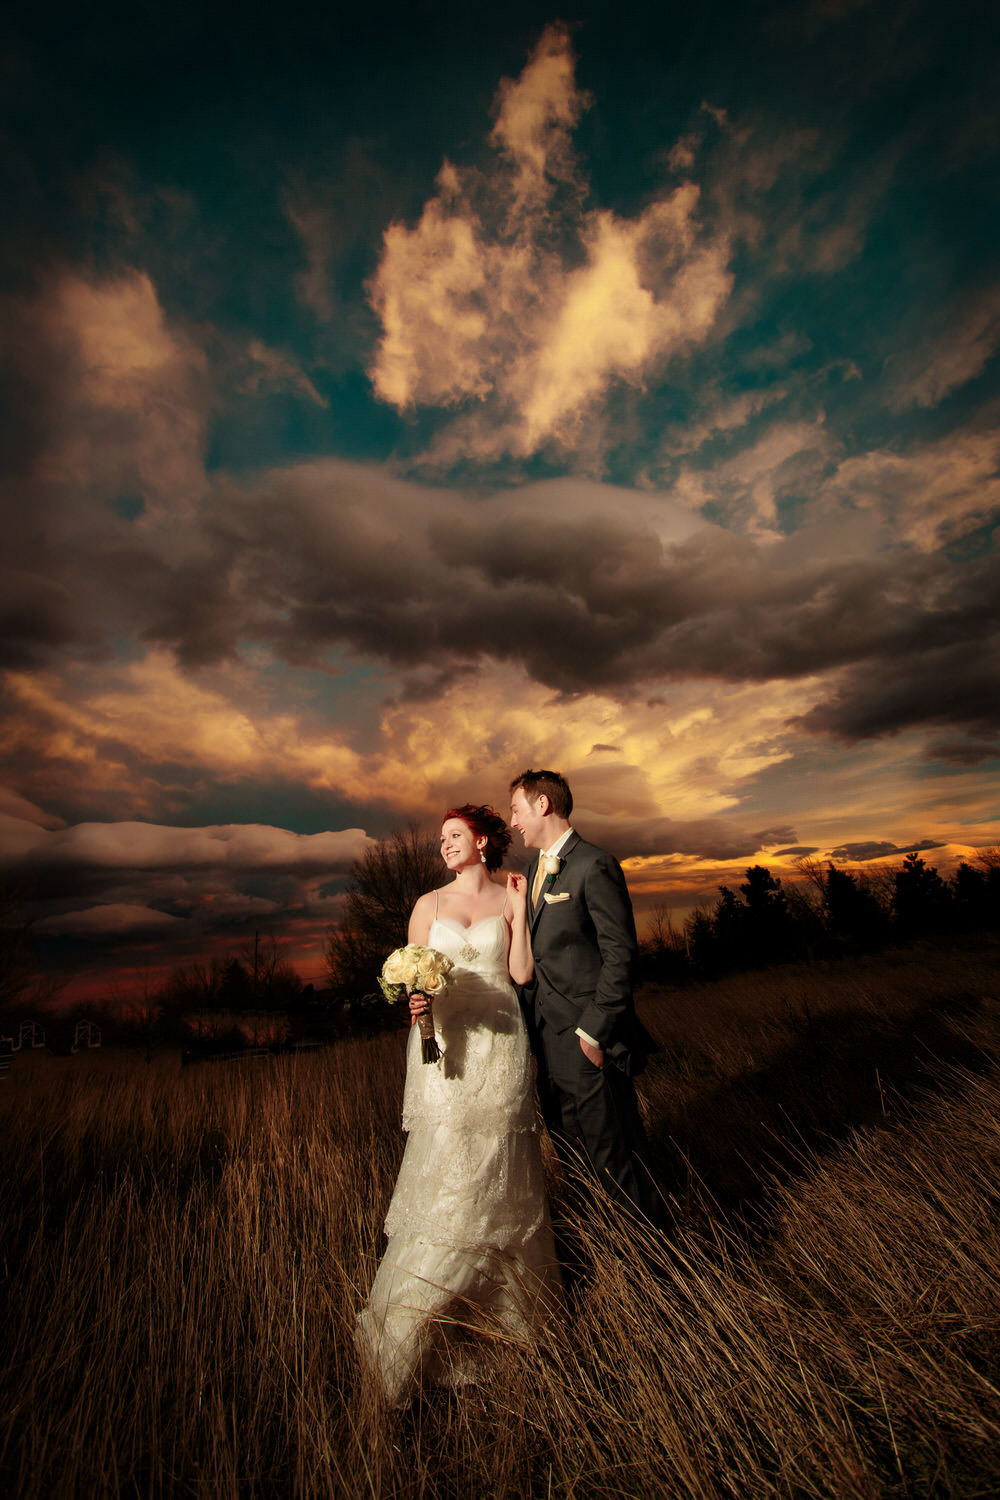 boulder-wedding-photographer-tomKphoto-026.jpg